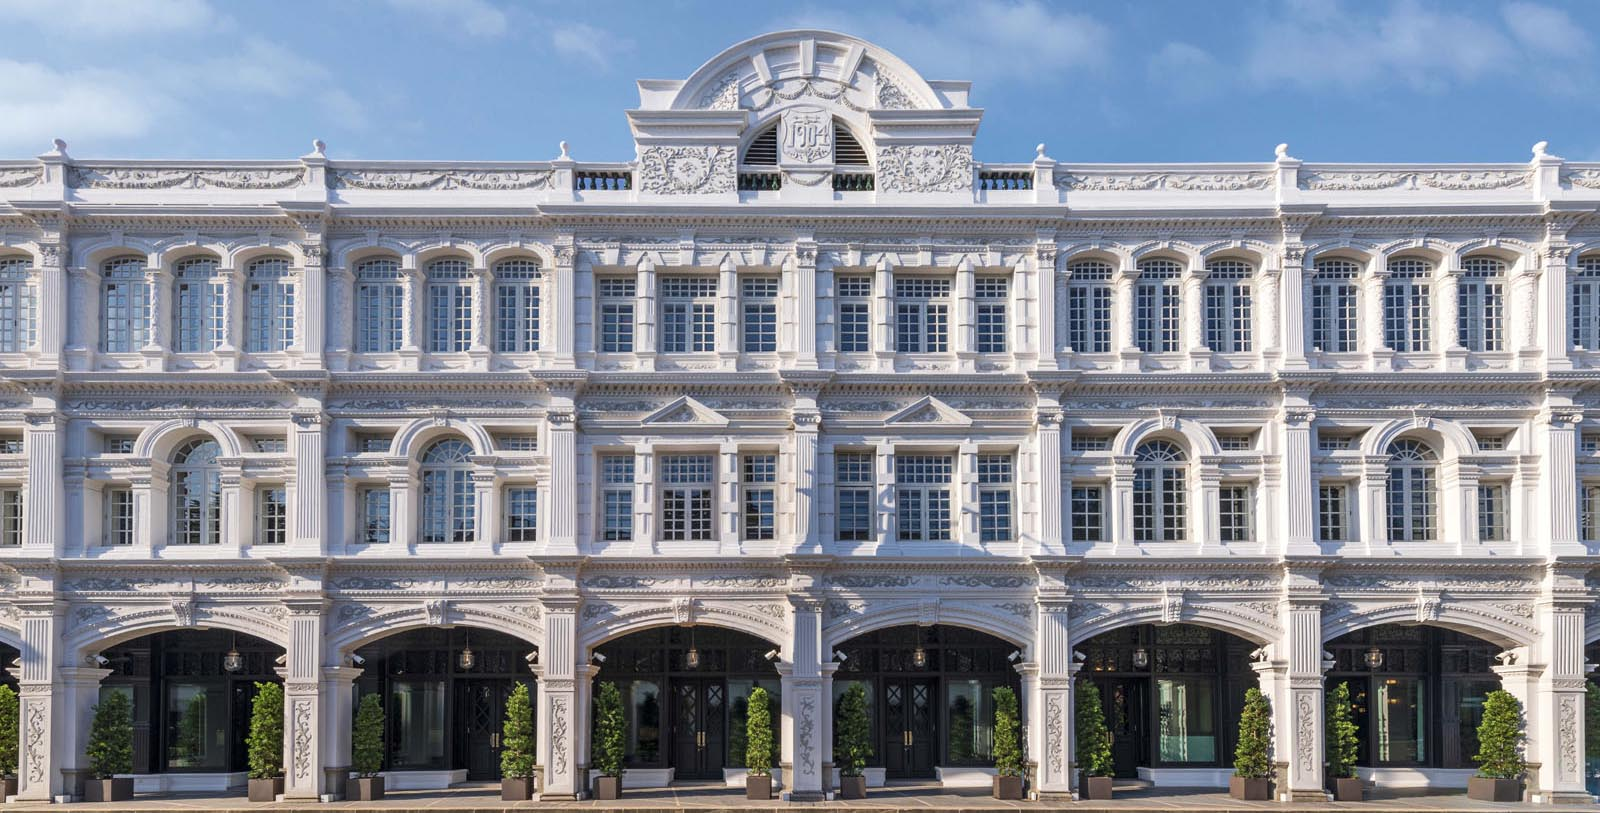 Image of hotel exterior The Capitol Kempinski Hotel Singapore, 1904, Member of Historic Hotels Worldwide, in Singapore, Overview